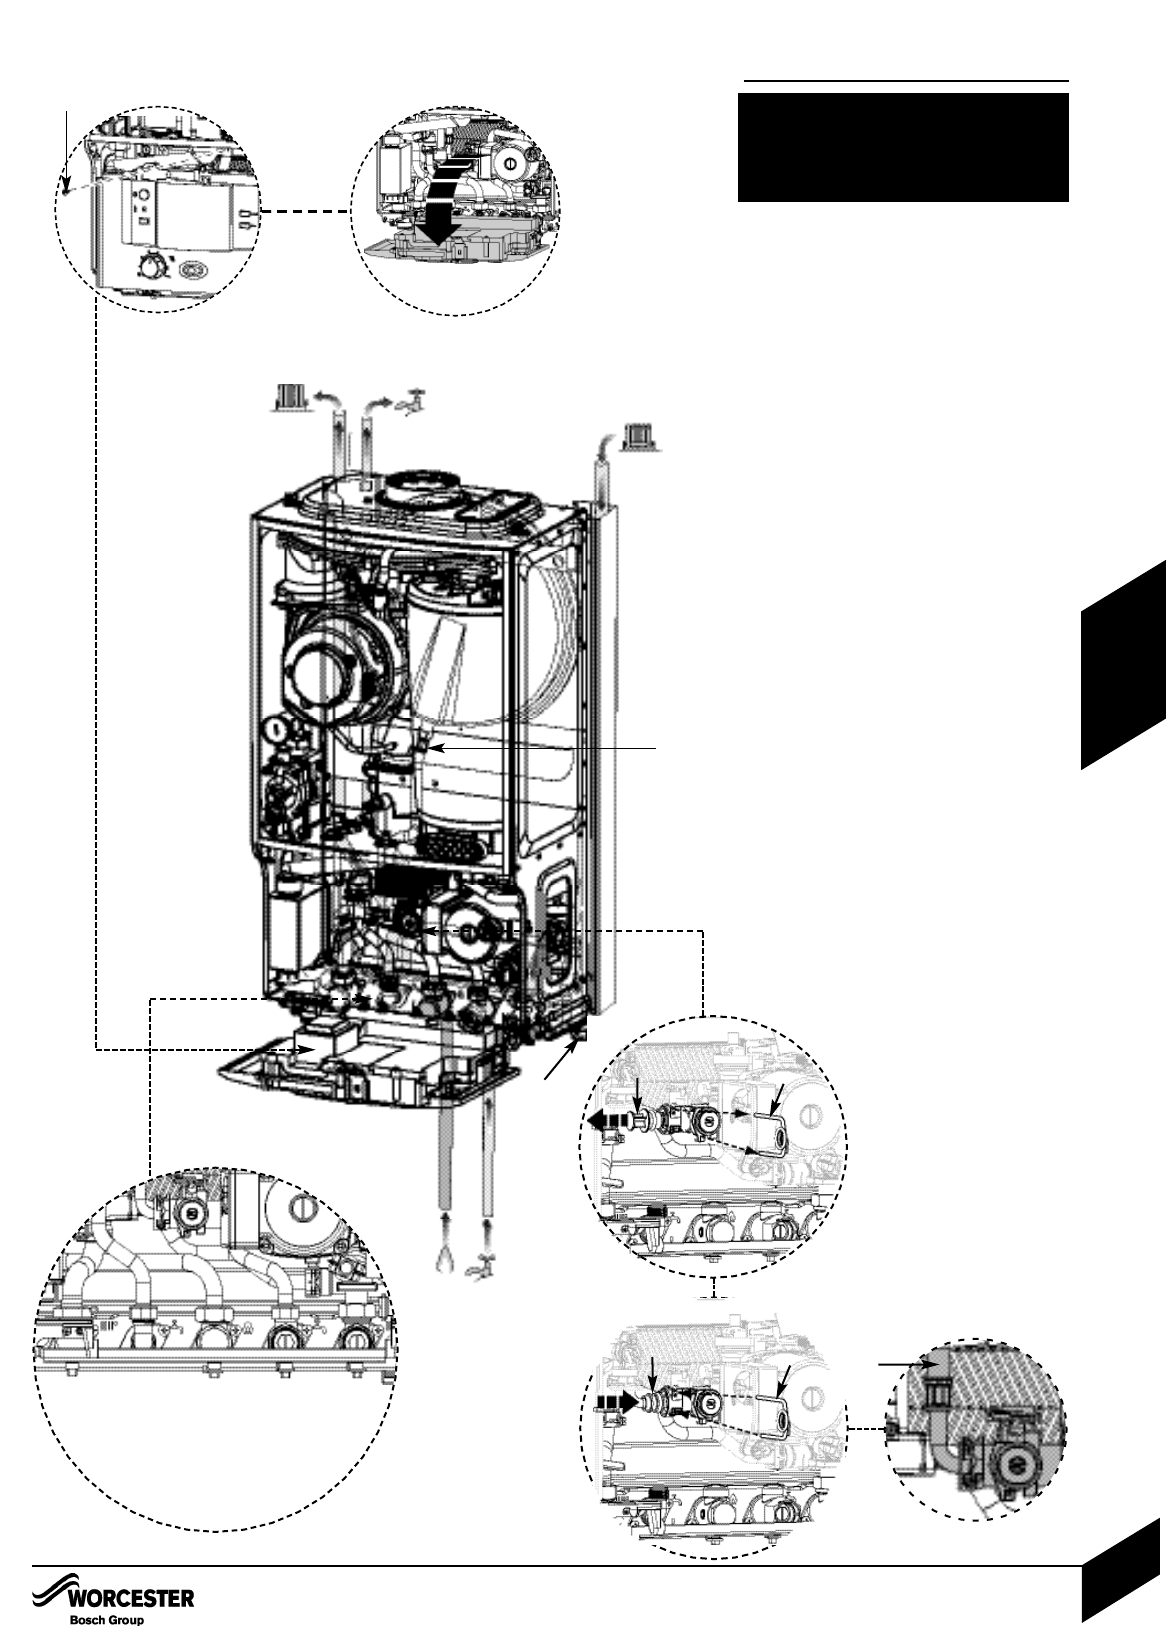 Piping A Combi Boiler Diagram